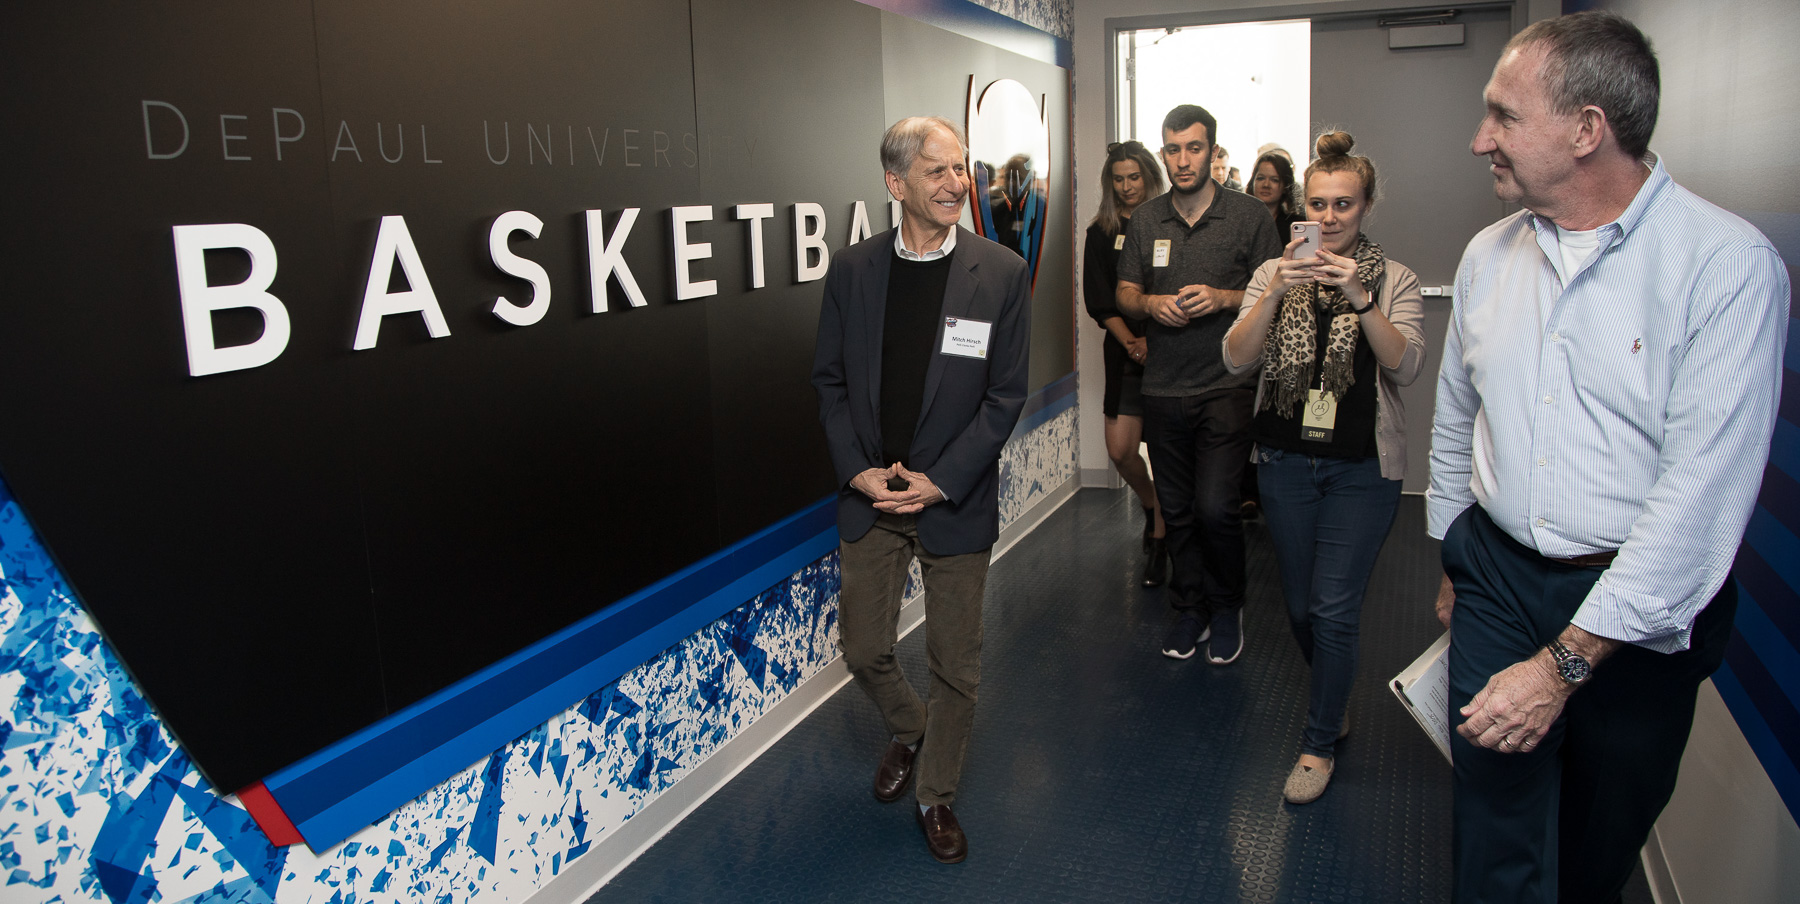 Mitchell Hirsch, principal architect for Pelli Clarke Pelli Architects, left, and Bob Janis, vice president of facility operations, lead attendees into DePaul's basketball suite. (DePaul University/Jeff Carrion)